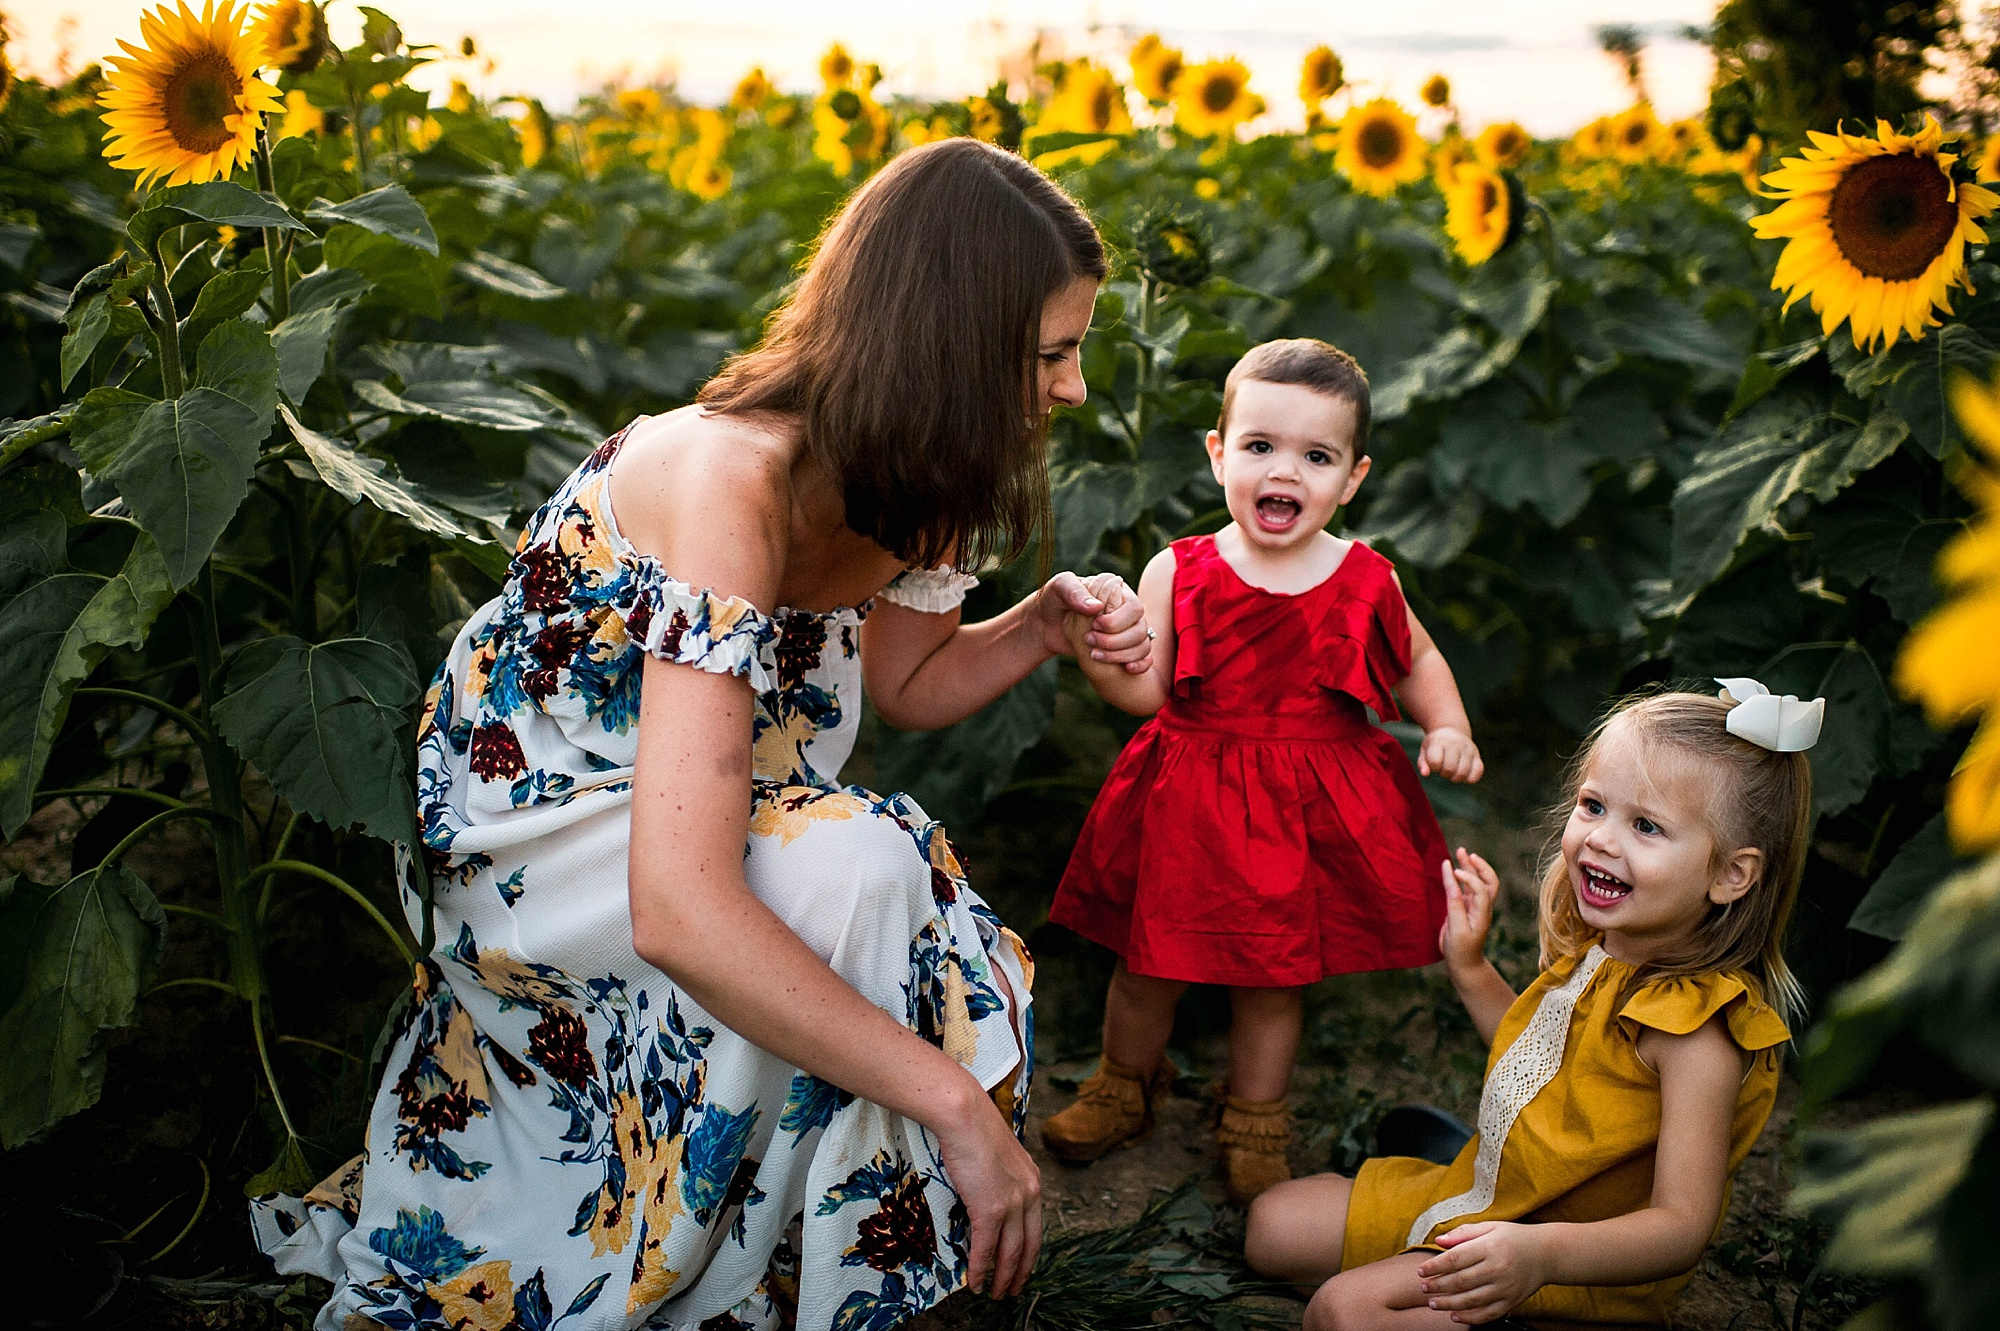 lauren-grayson-photography-cleveland-ohio-photographer-sunflower-fields-sunset-golden-hour-photo-shoot-mommy-and-me-family-child-photographer_0576.jpg